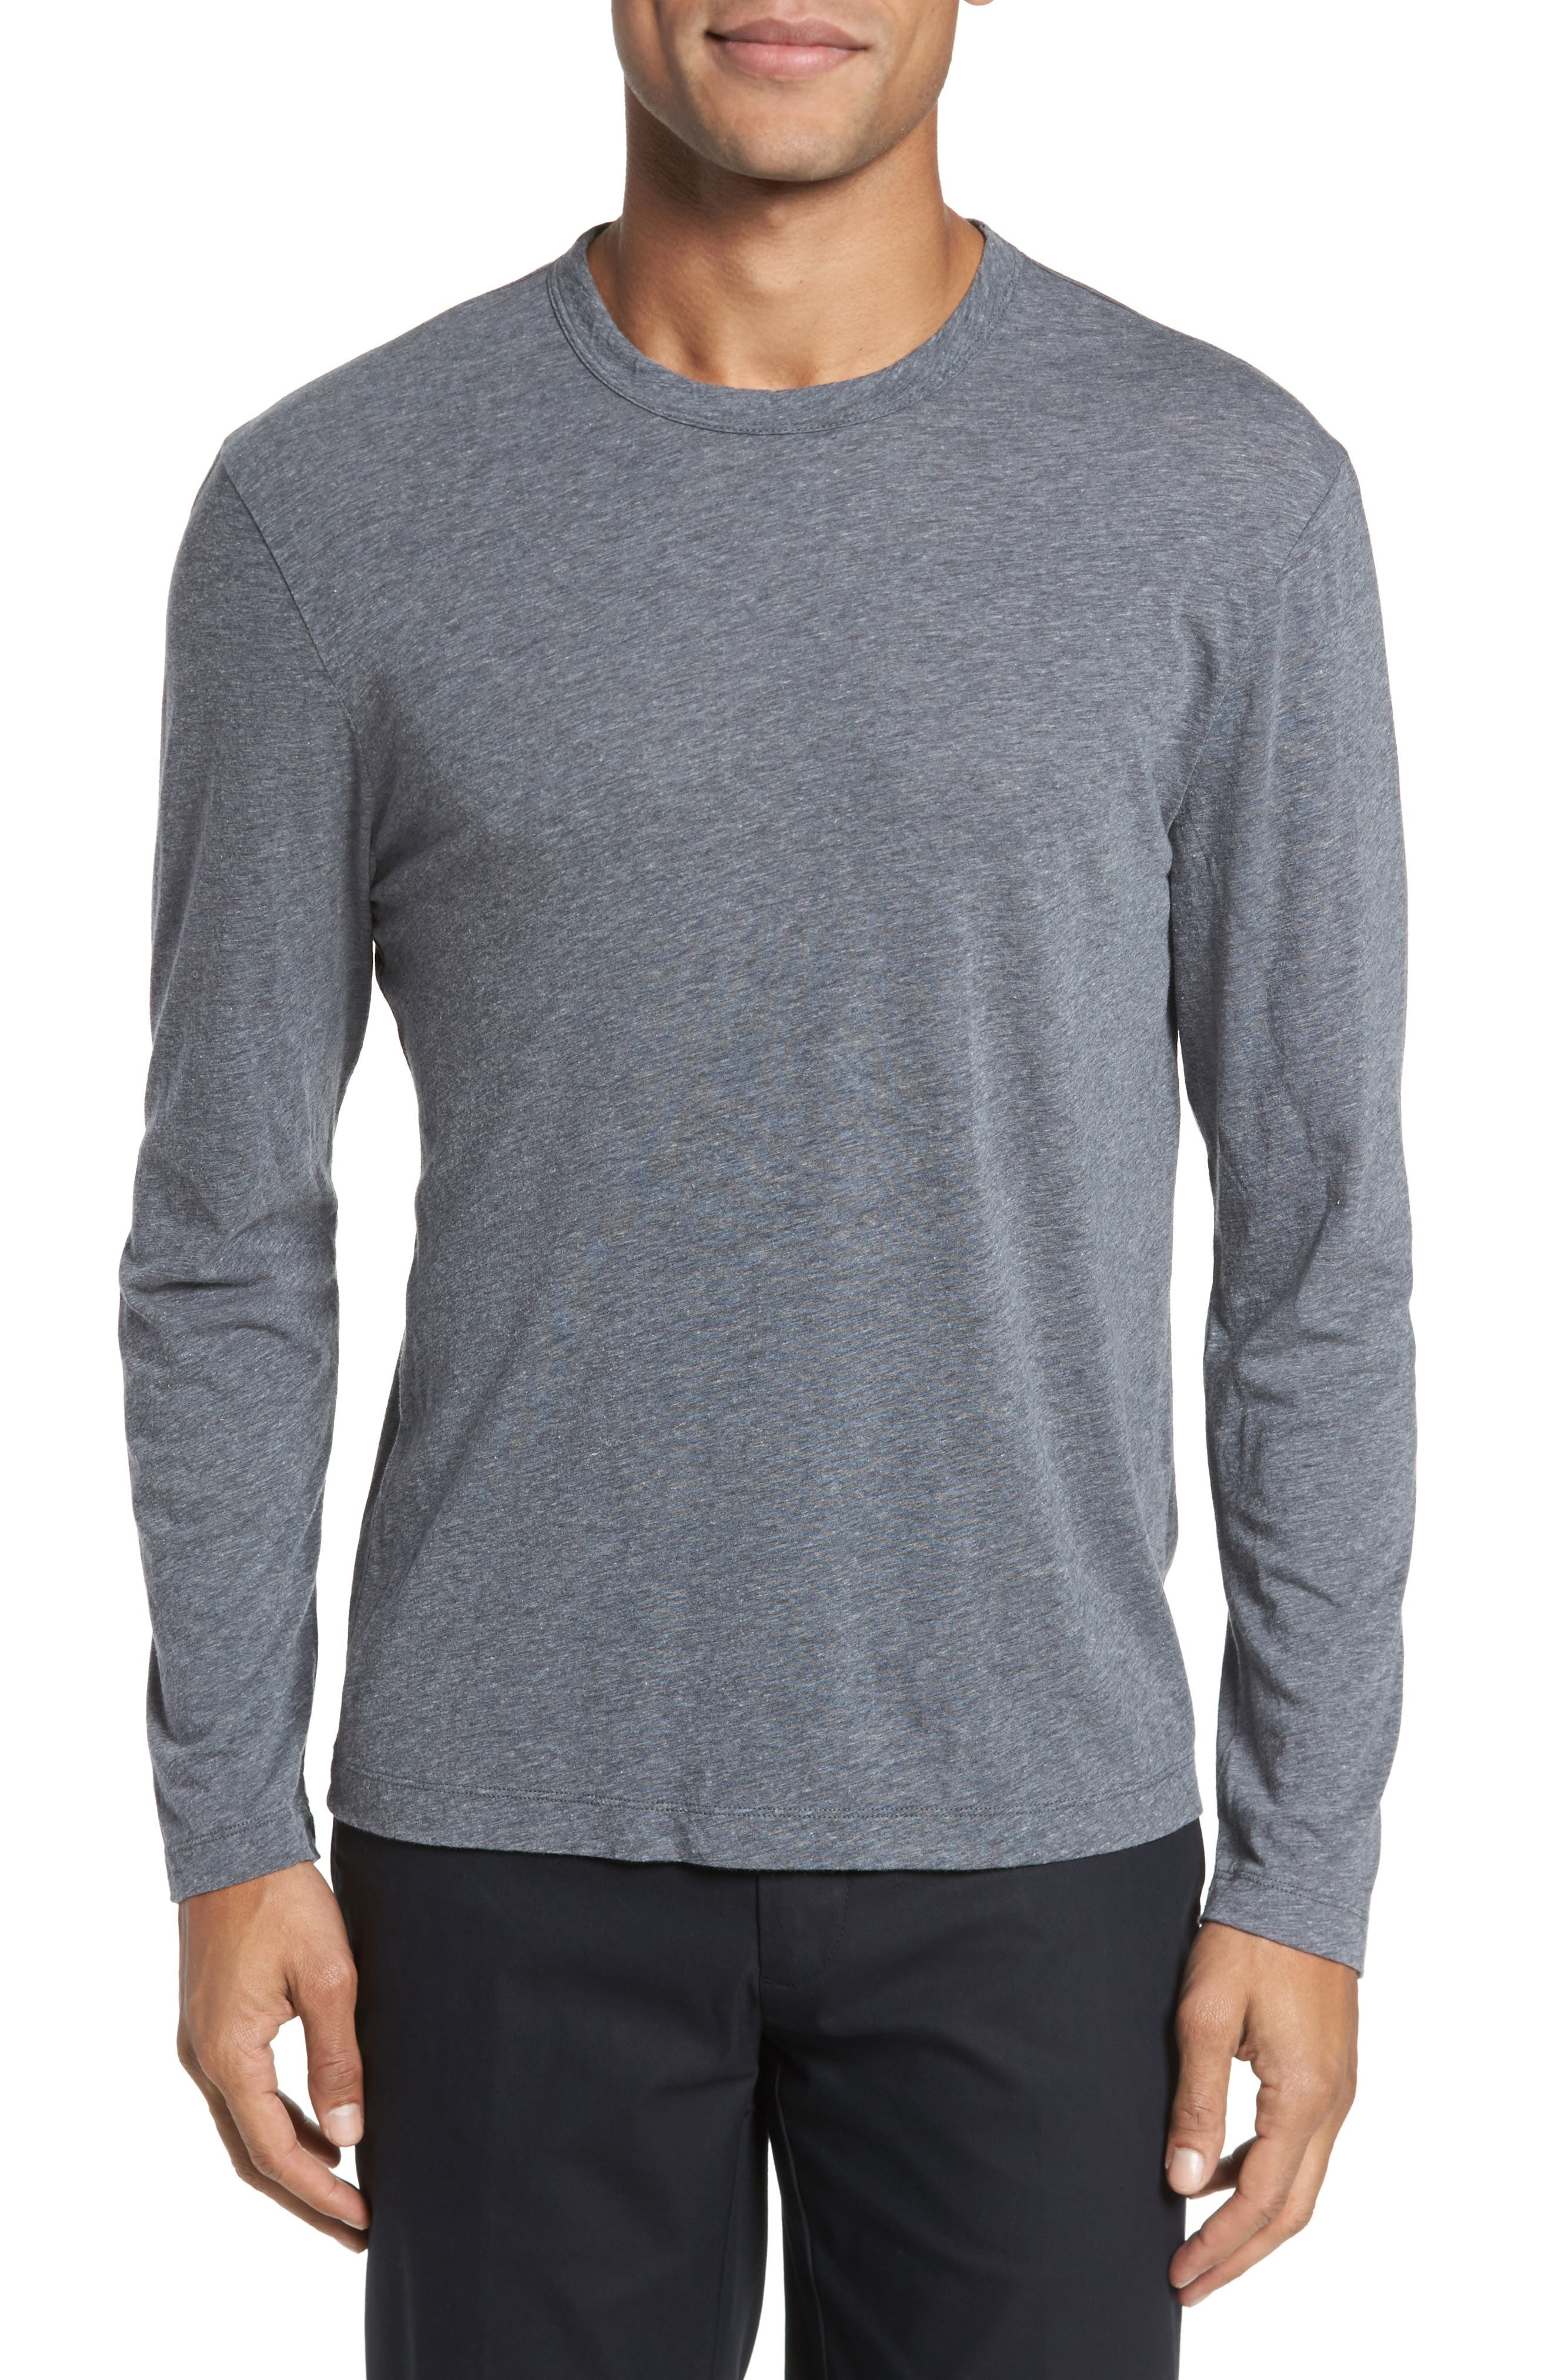 James Perse Mélange Long Sleeve Graphic T-Shirt